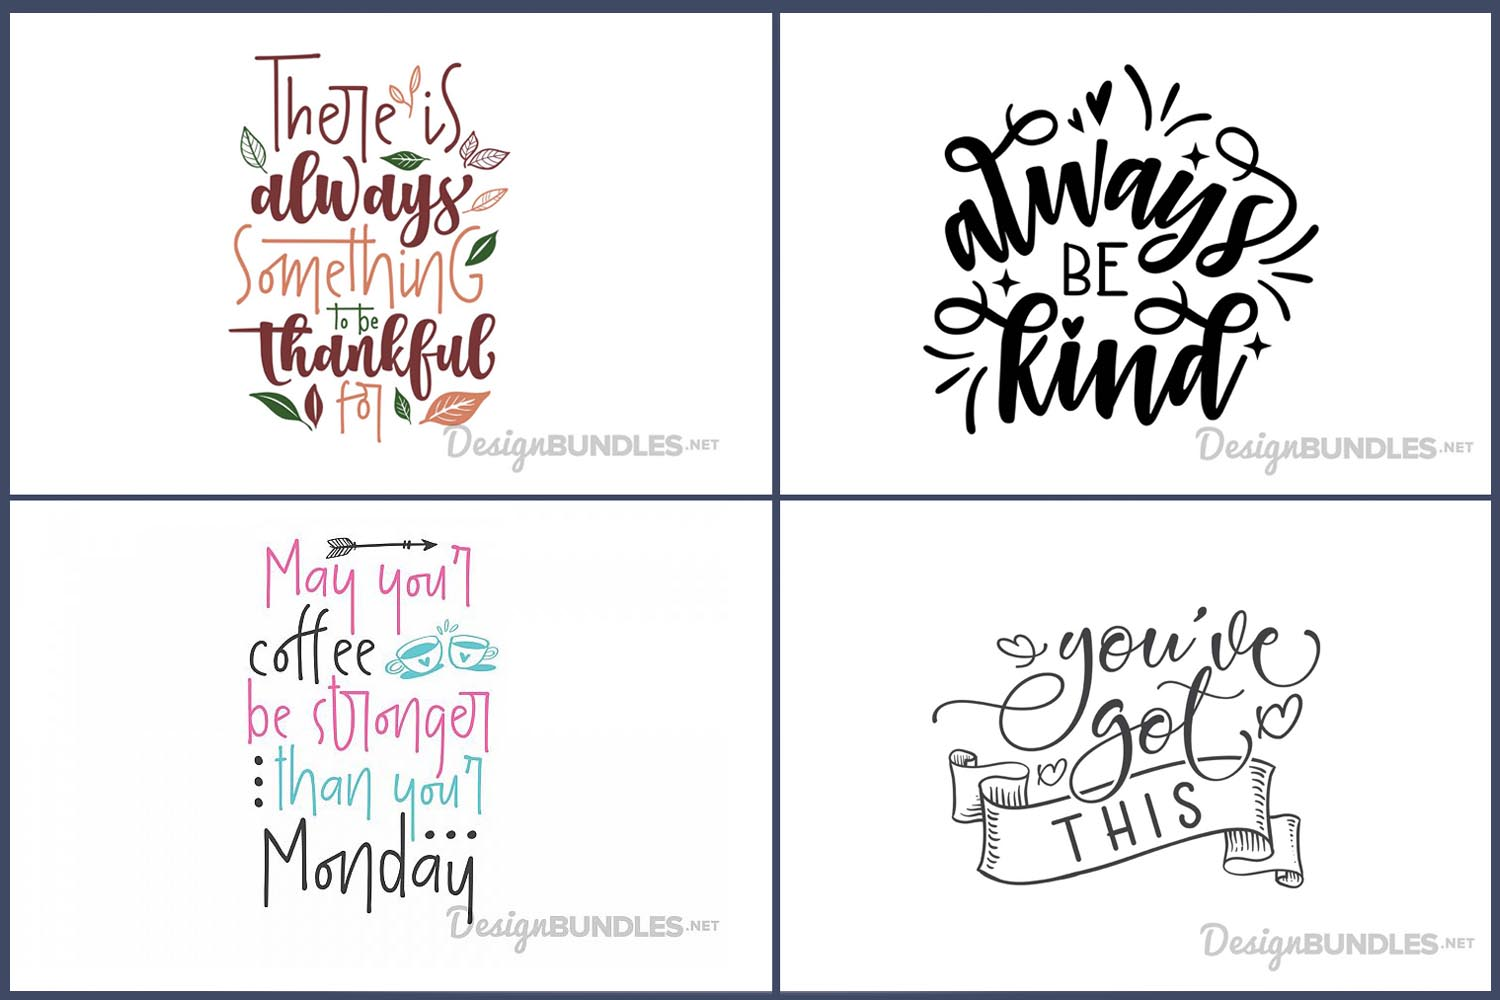 svg design bundles